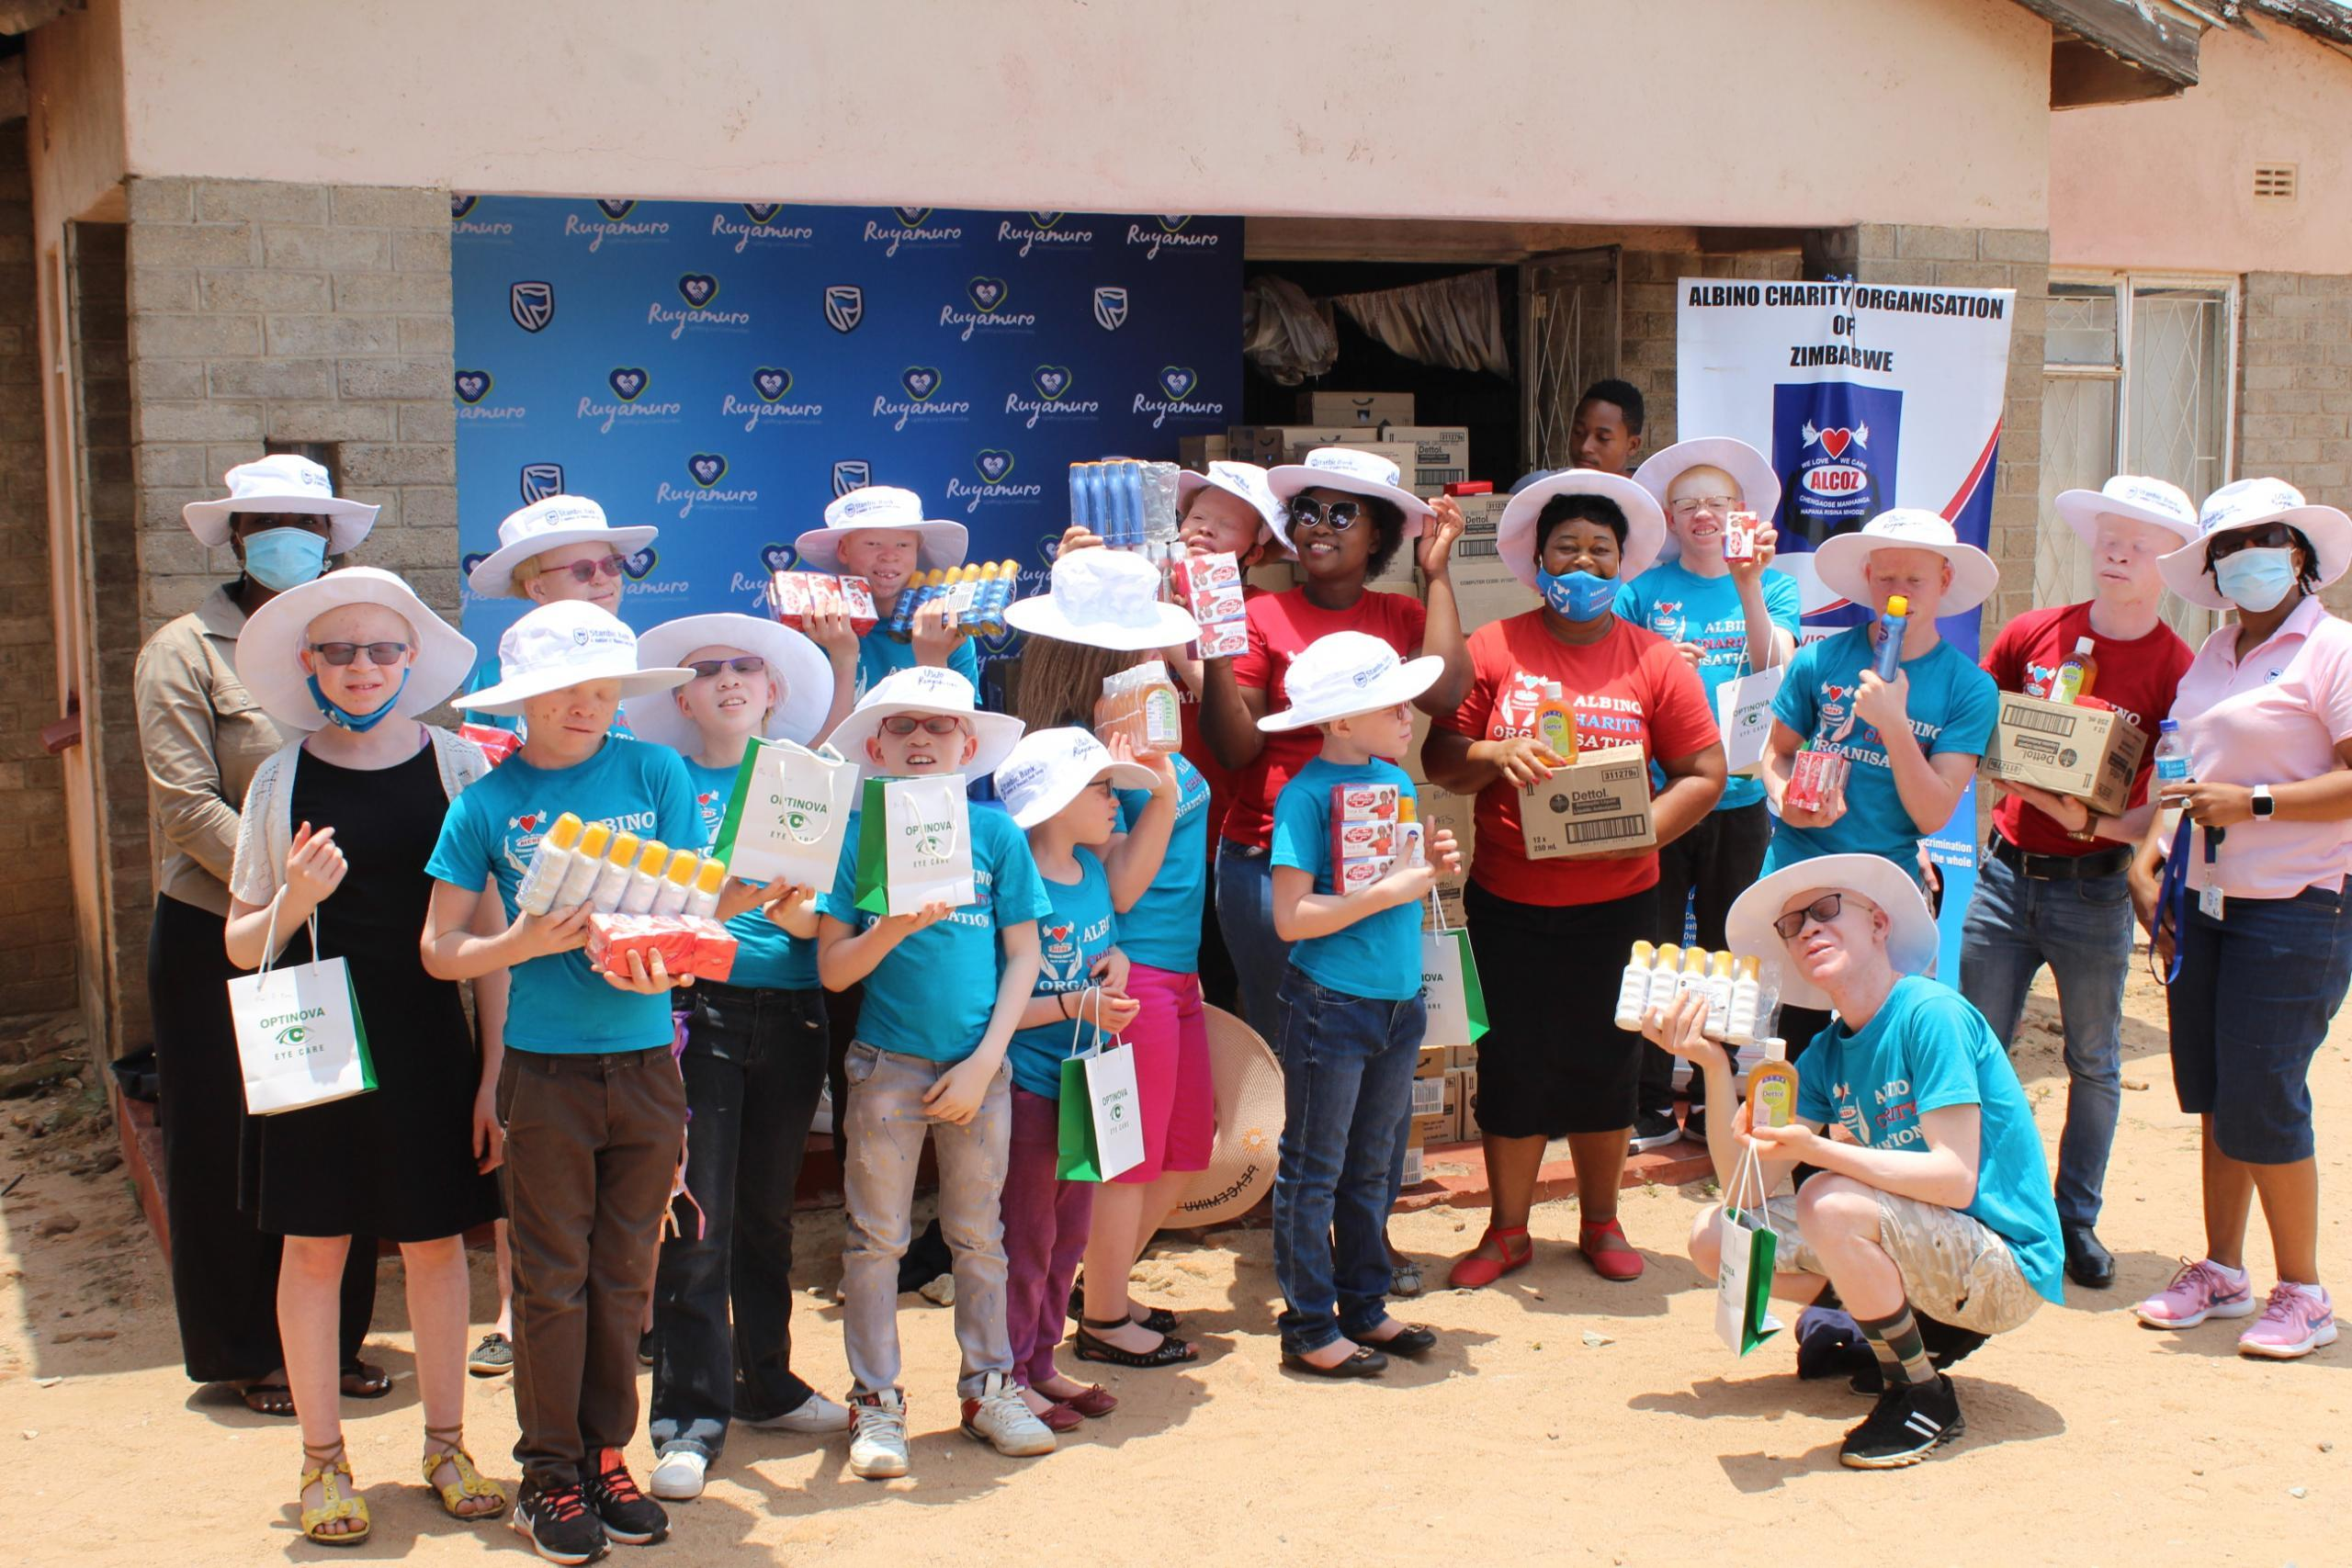 Stanbic Donates US$34k Worth Of Sun Protection Products For People Living With Albinism